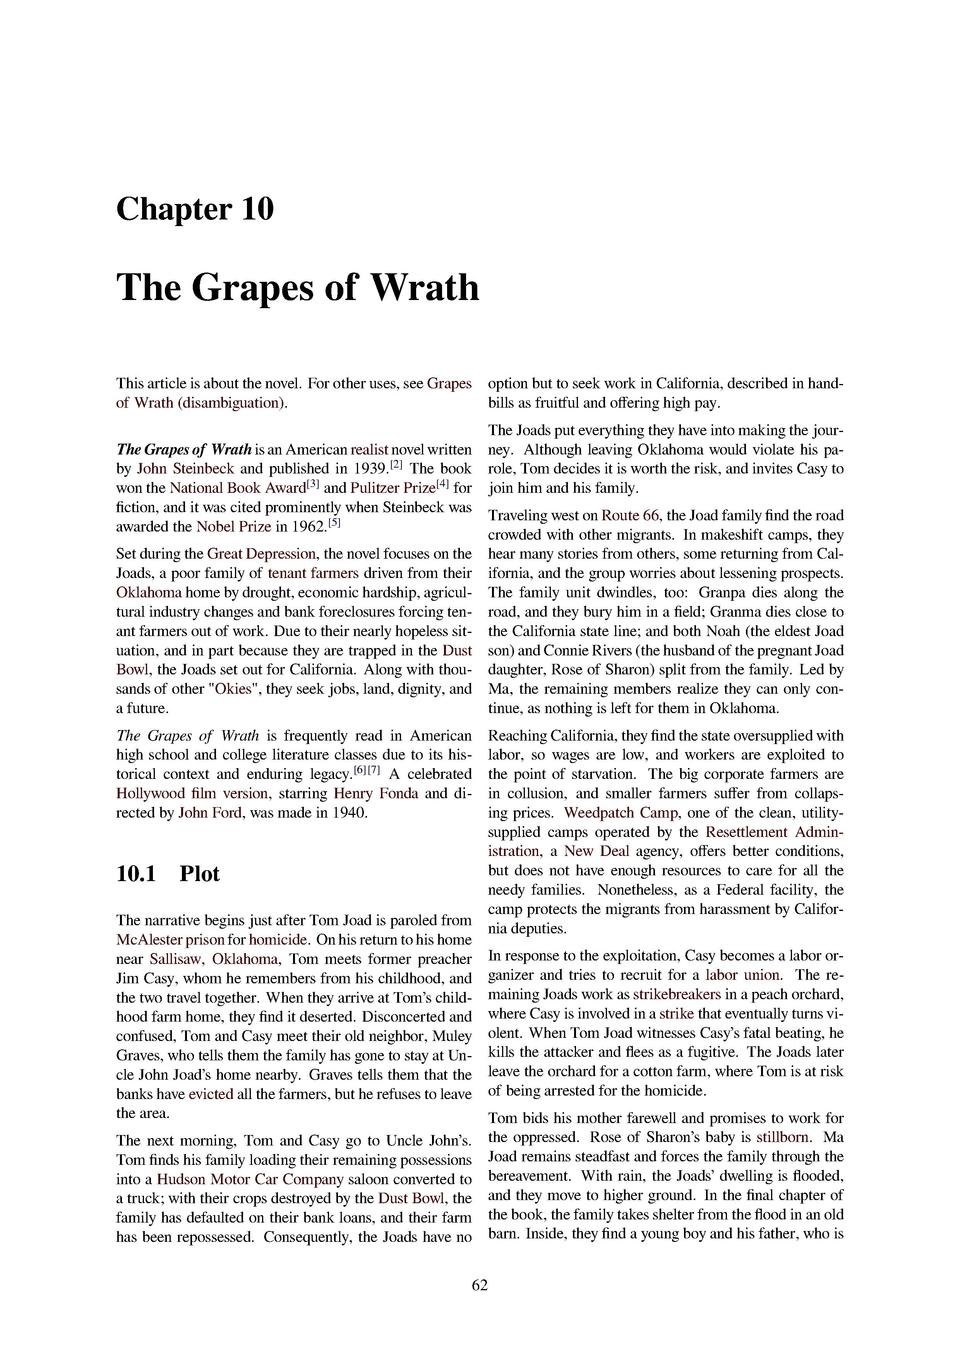 Chapter 10 The Grapes Of Wrath This Article Is About The Novel For Other  Uses